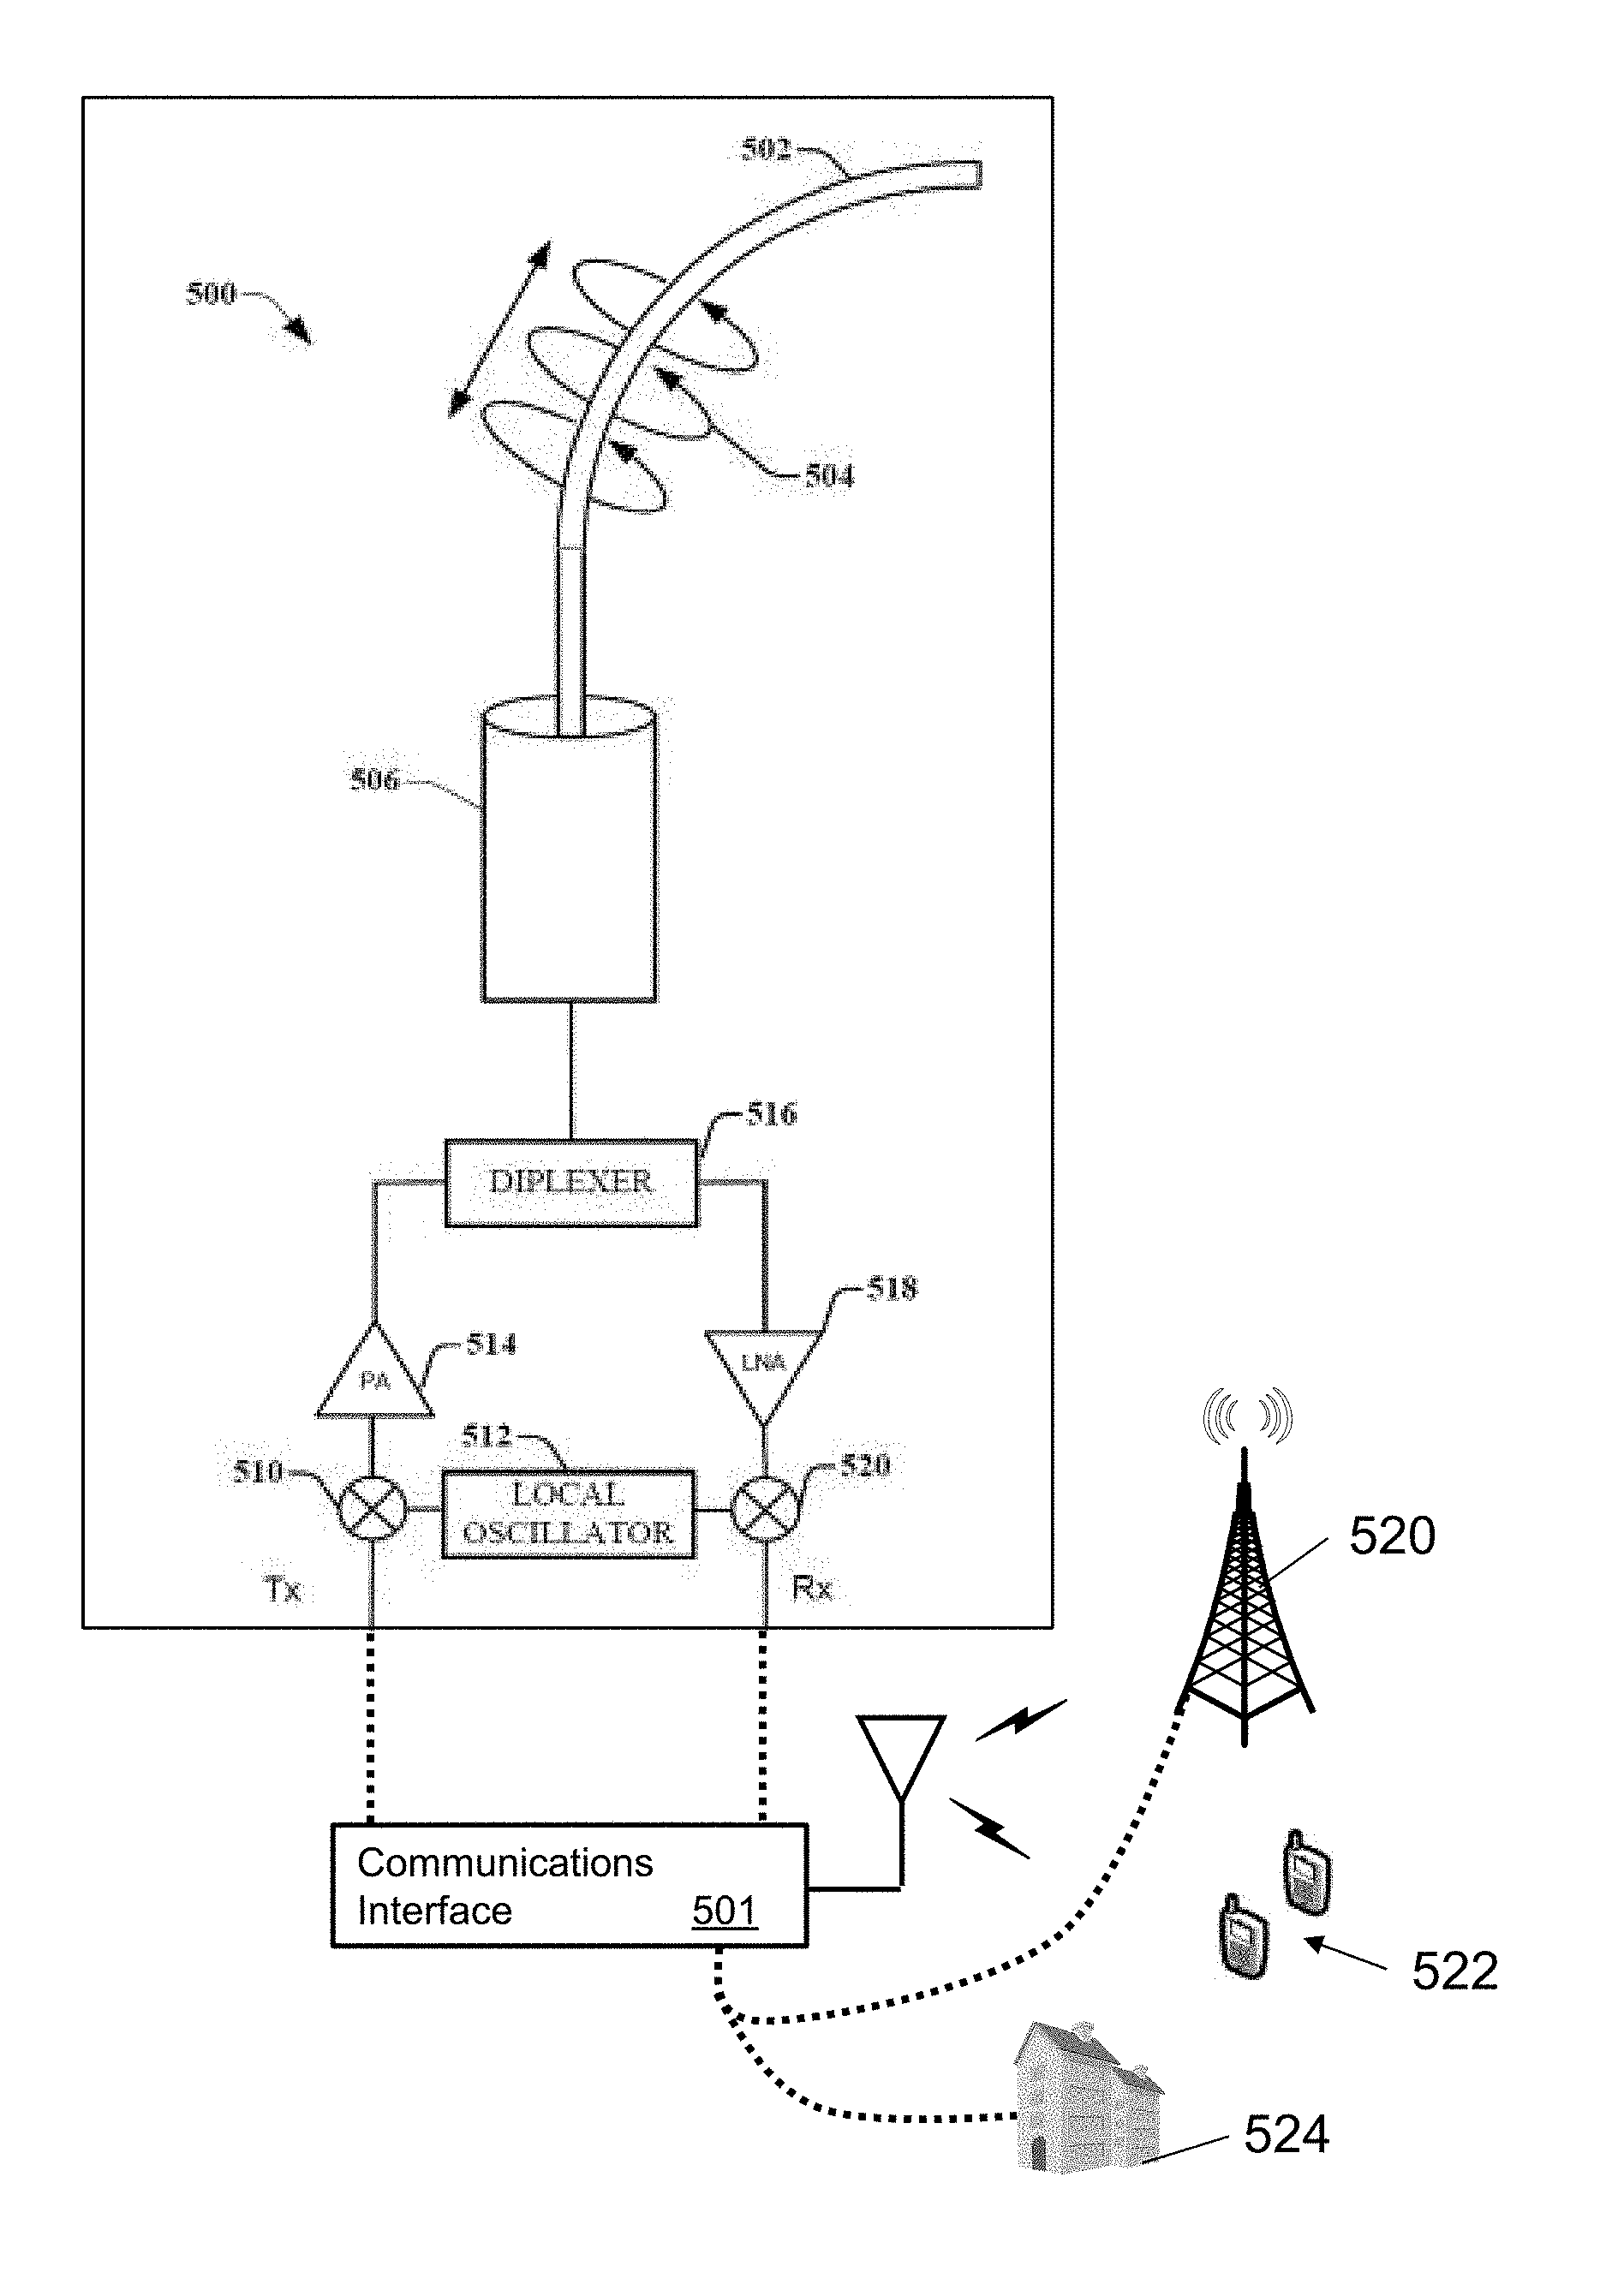 Us9876570b2 guided wave transmission device with non fundamental mode propagation and methods for use therewith patents